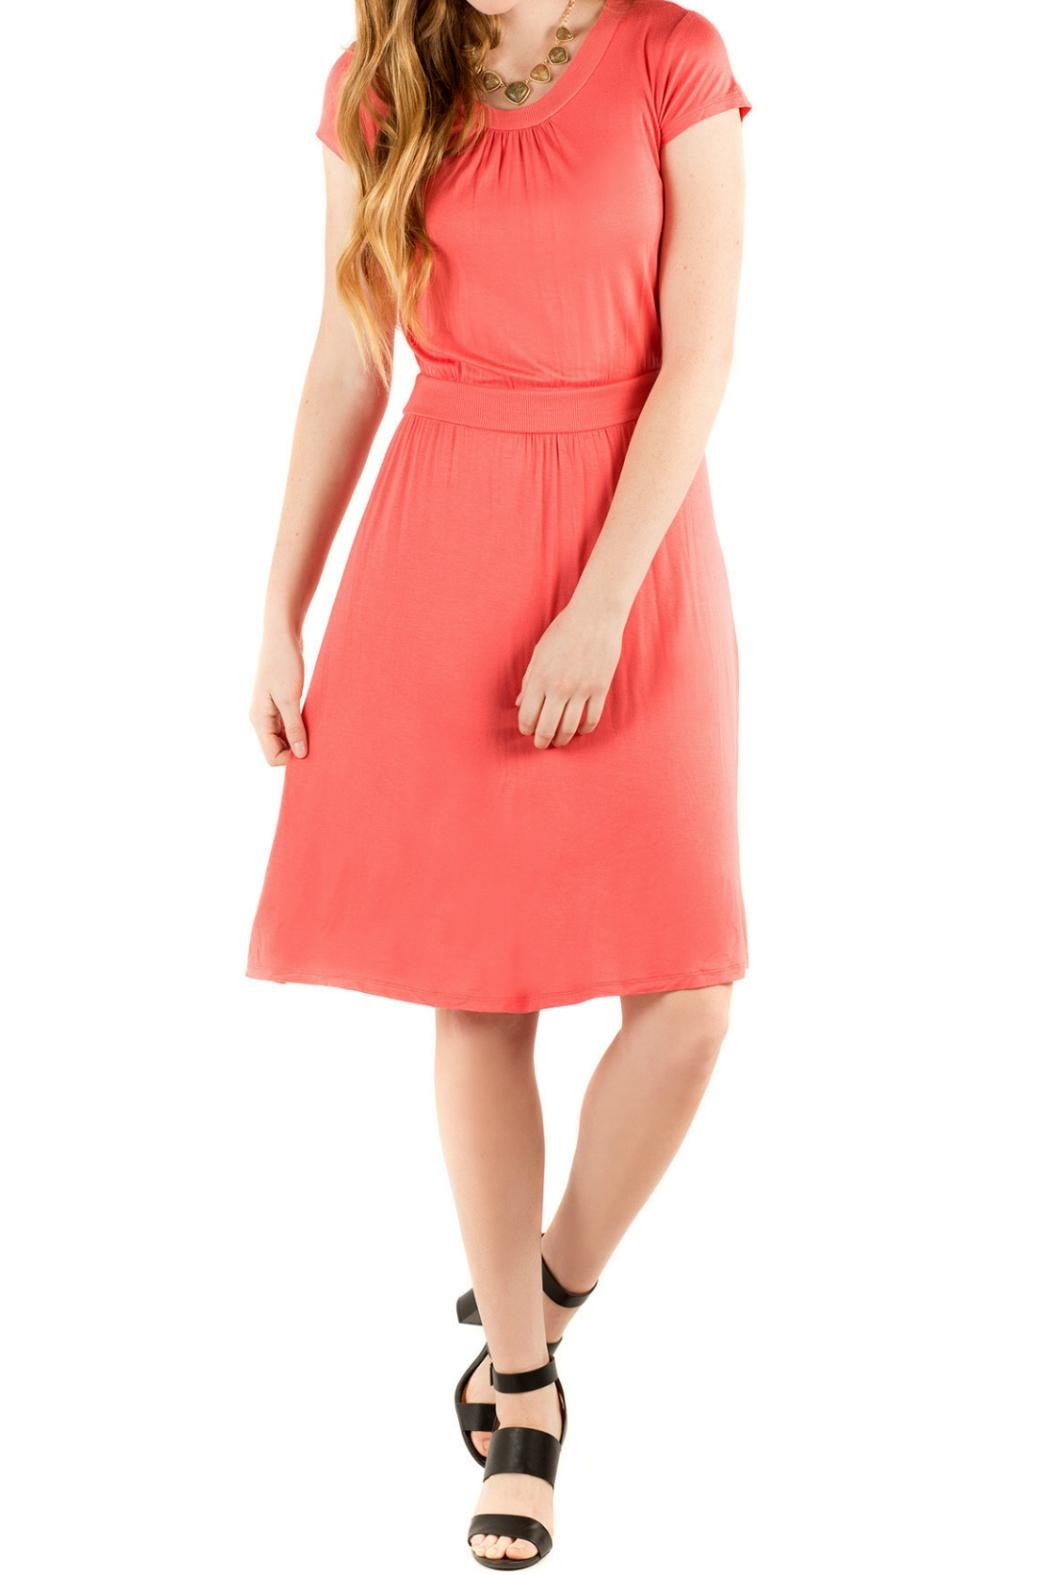 Downeast Basics Copacetic Dress Coral - Front Cropped Image